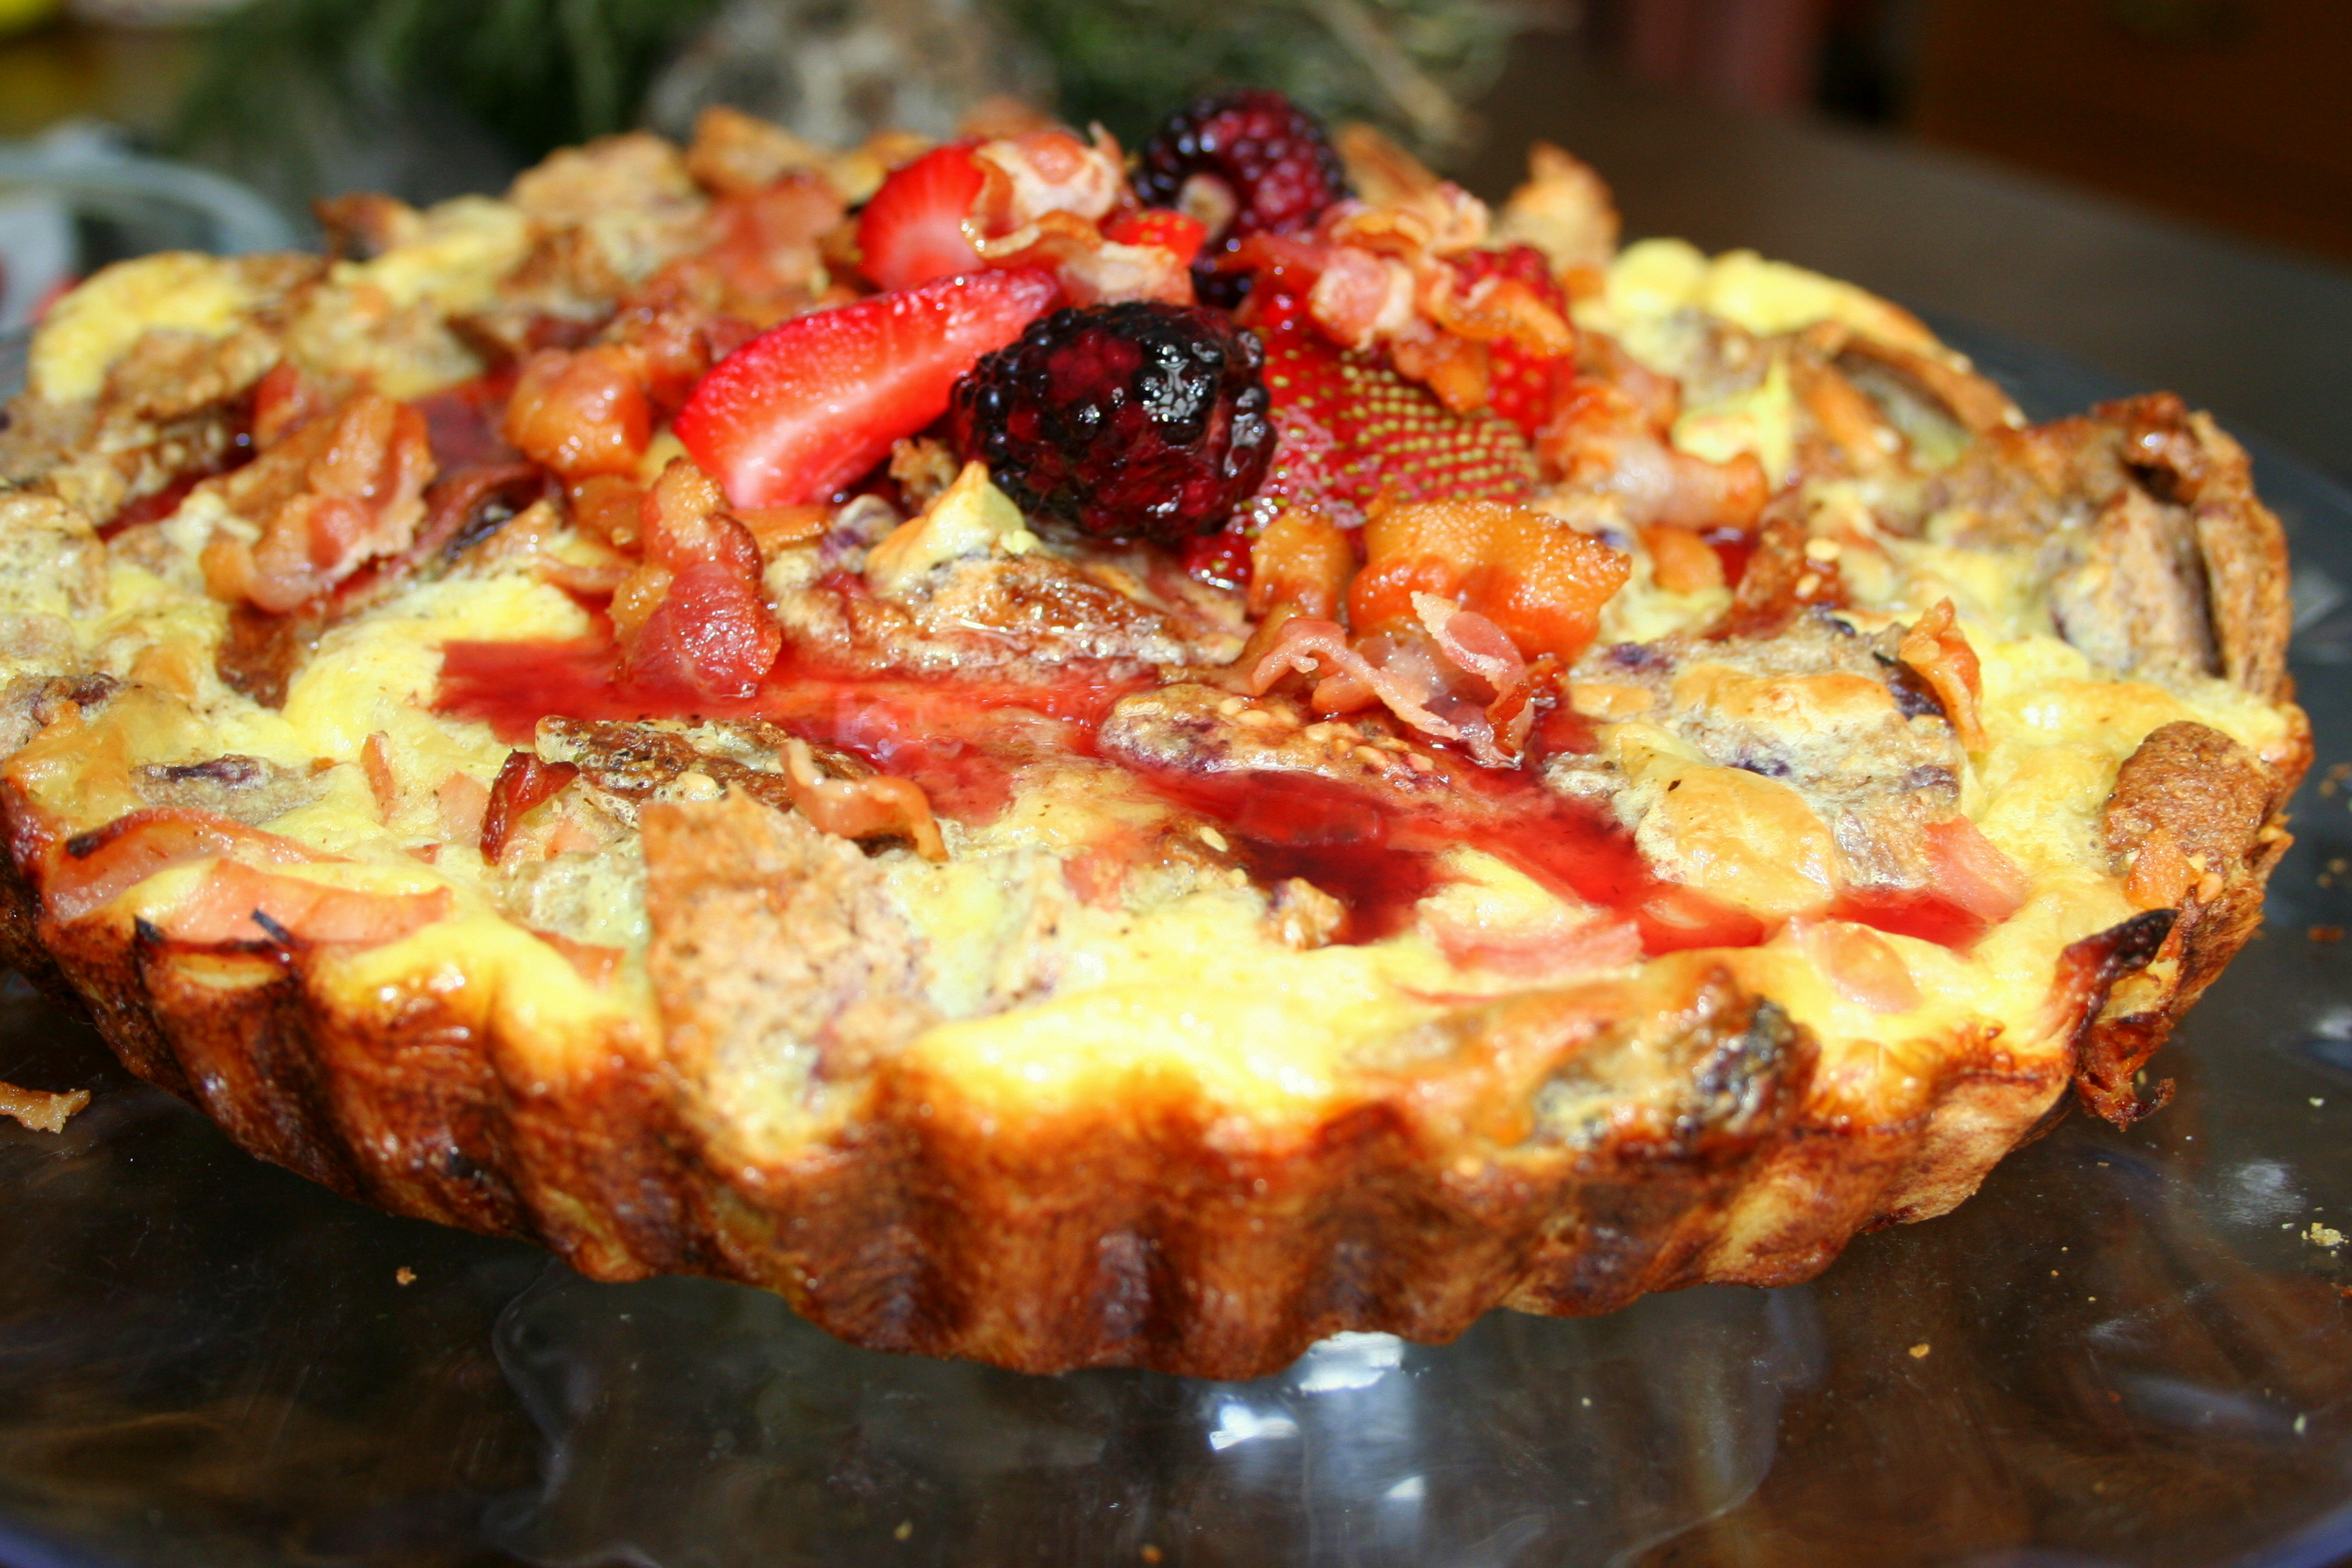 berries and bacon breakfast casserole this is one of my most used breakfast casseroles recipes